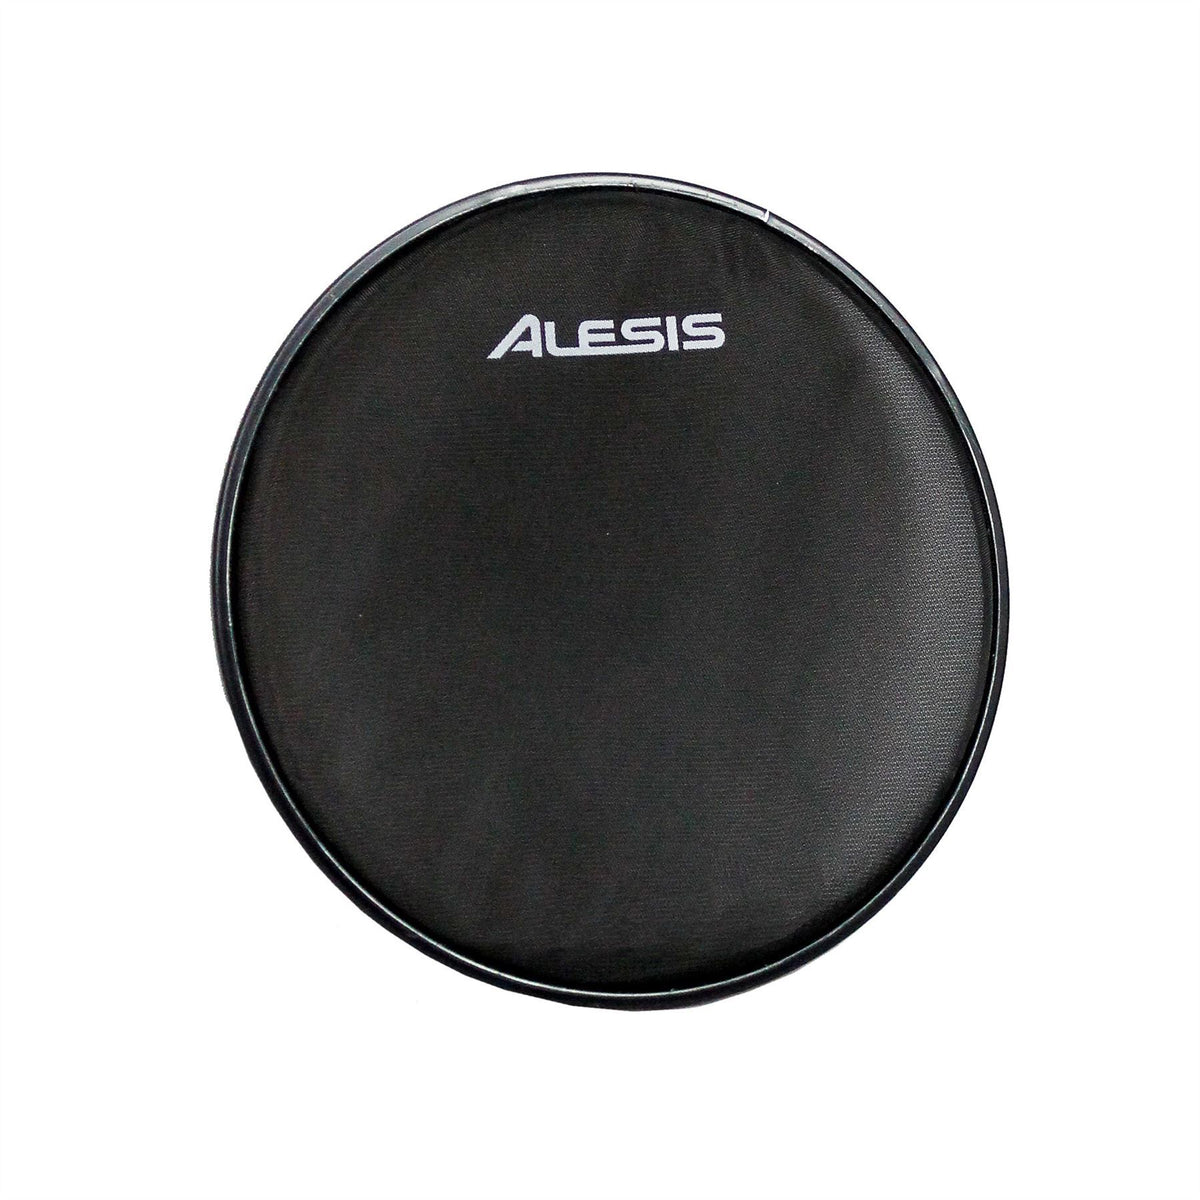 "Alesis 8"" Mesh Head for DM10 MKII Pro and DM10 MKII Studio Electronic Drum Kit"